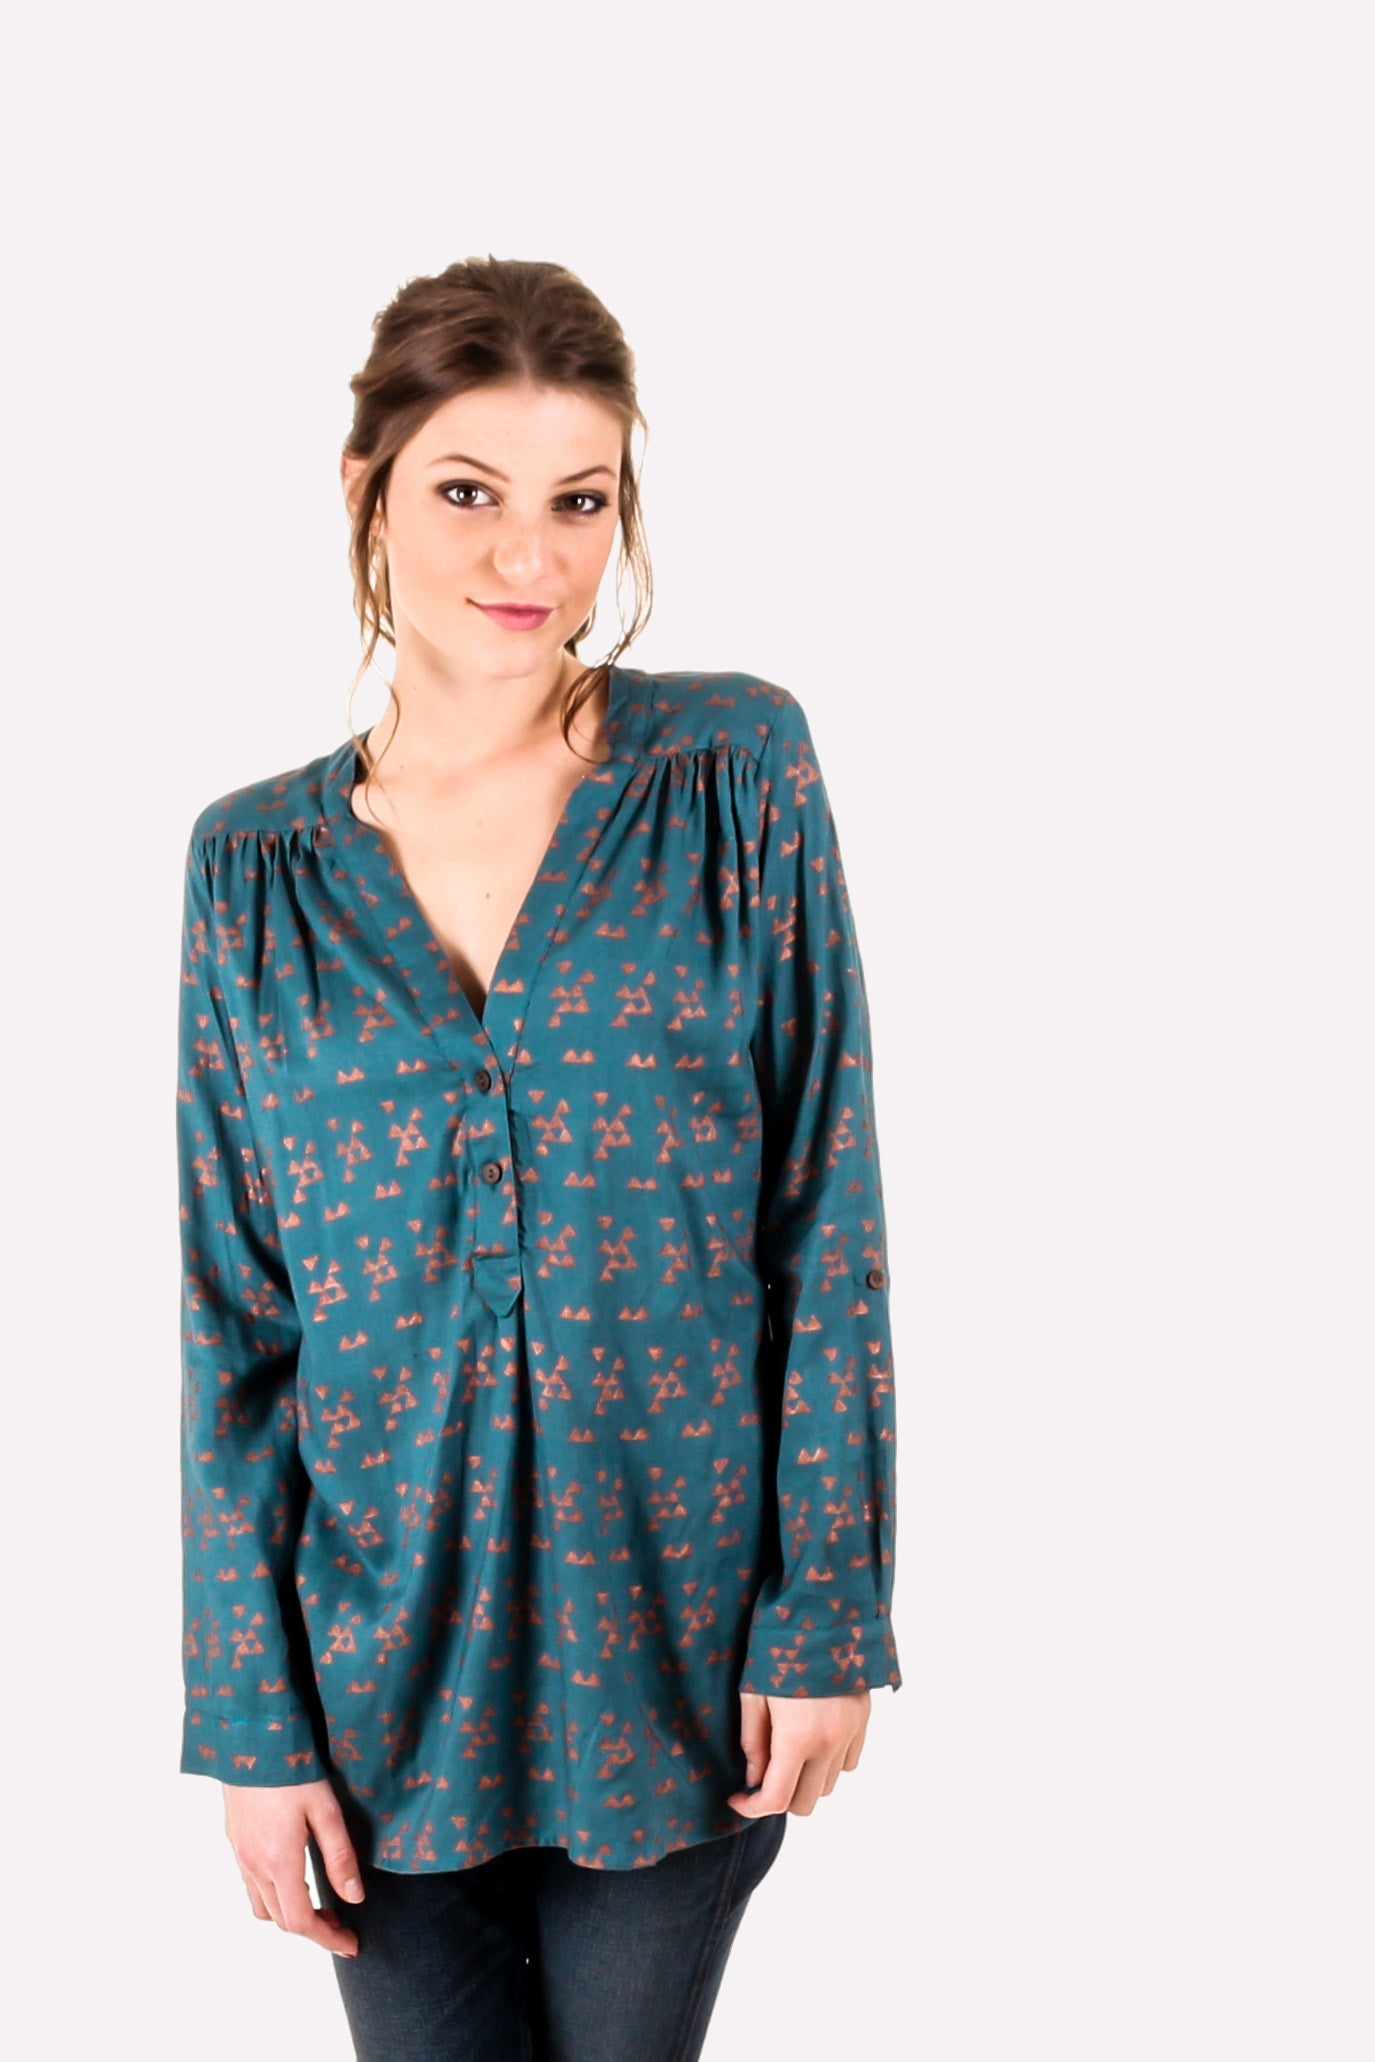 Symbology Triangulate Tunic | Women's Holiday Style